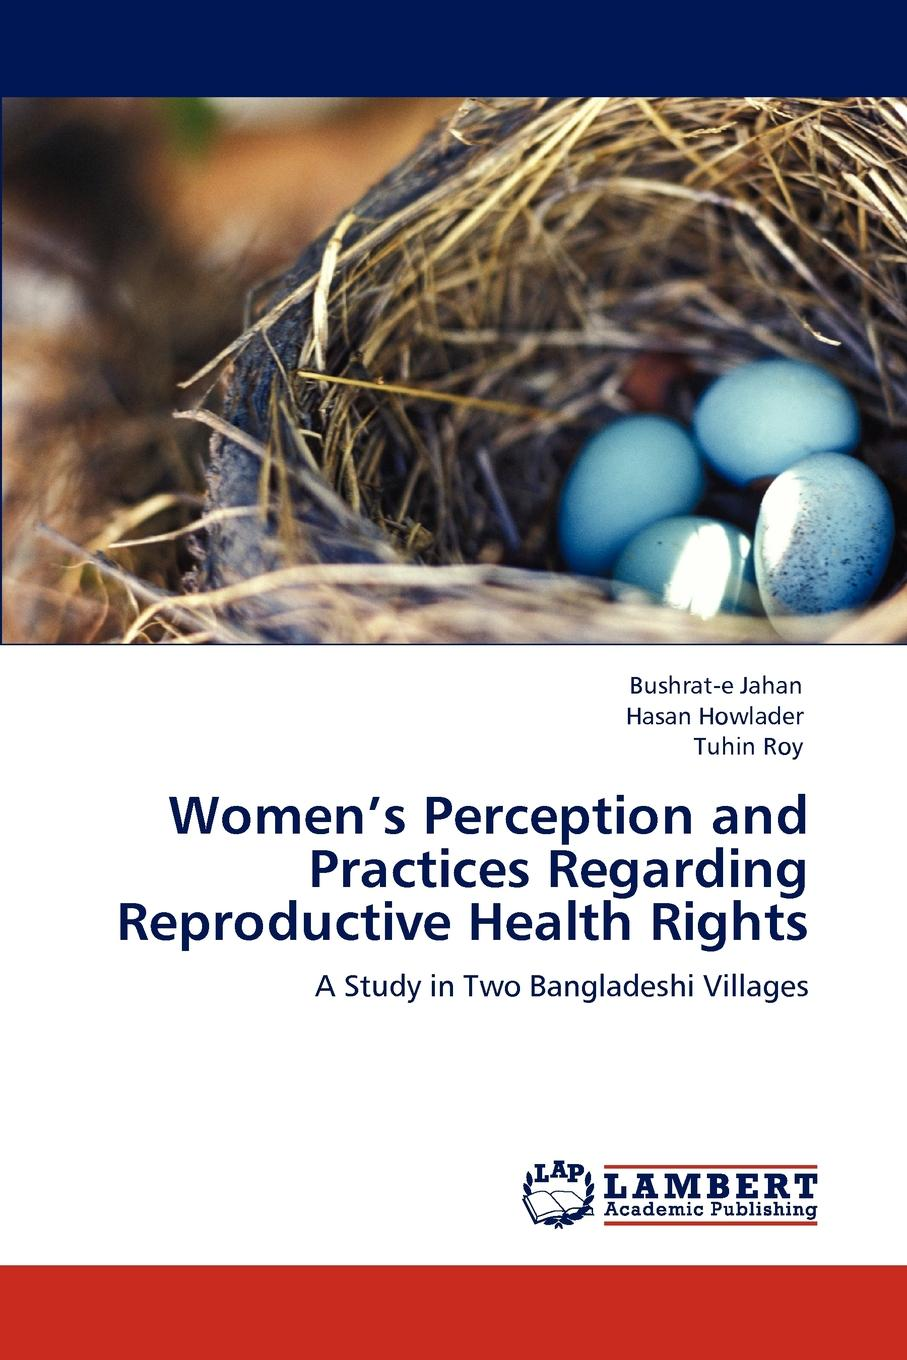 Bushrat-e Jahan, Hasan Howlader, Tuhin Roy Women.s Perception and Practices Regarding Reproductive Health Rights gender inequity and reproductive health status of rural women